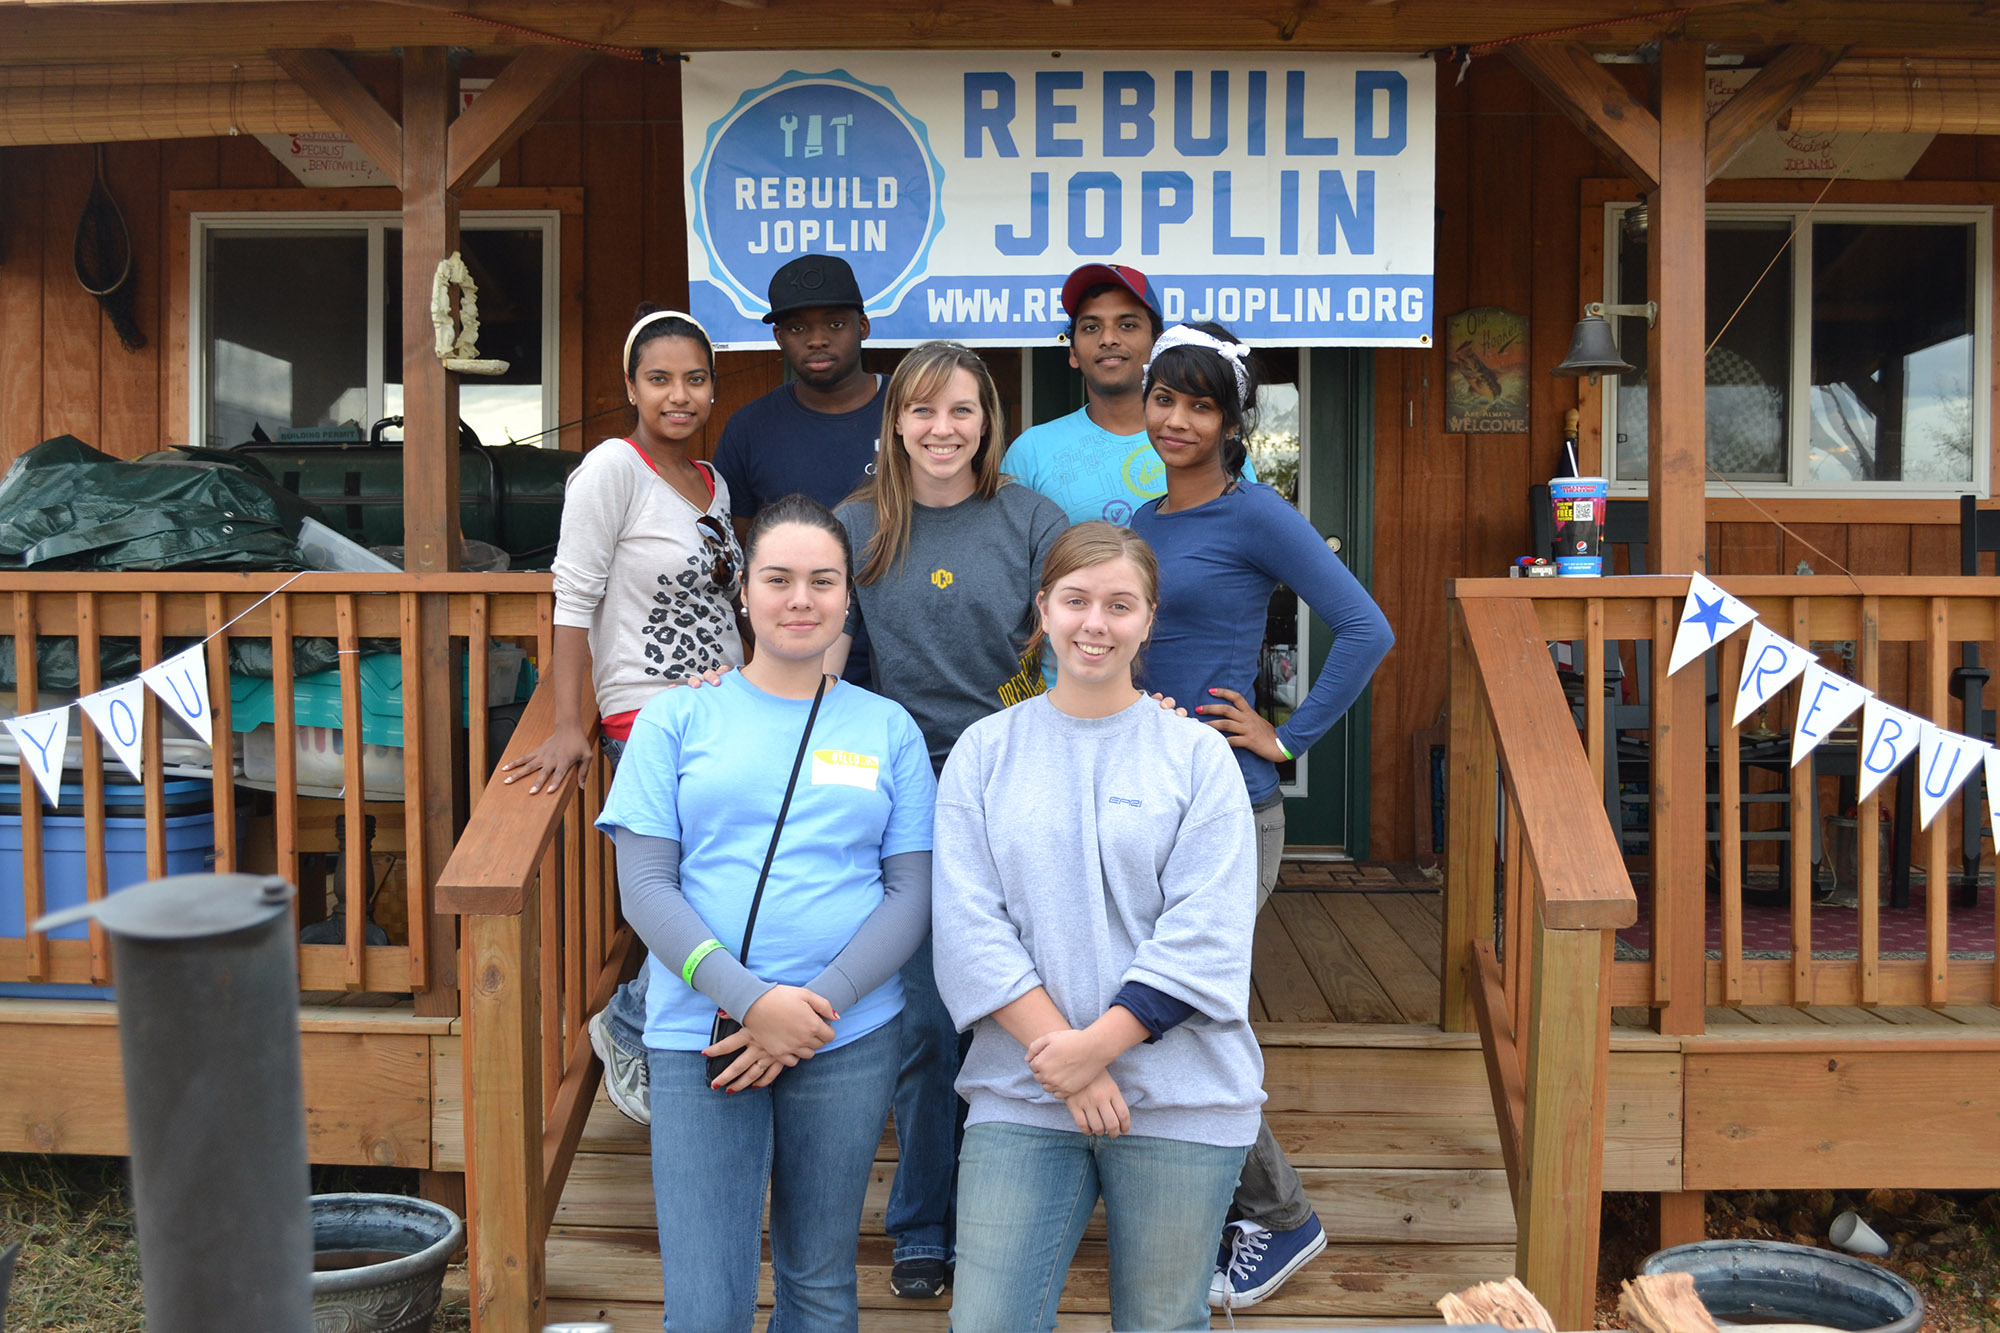 University of Central Oklahoma students rebuilt homes destroyed by the May 22, 2011 tornado in Joplin, Mo. over fall break with Rebuild Joplin, a non-profit agency that provides long-term recovery and rebuilding systems.